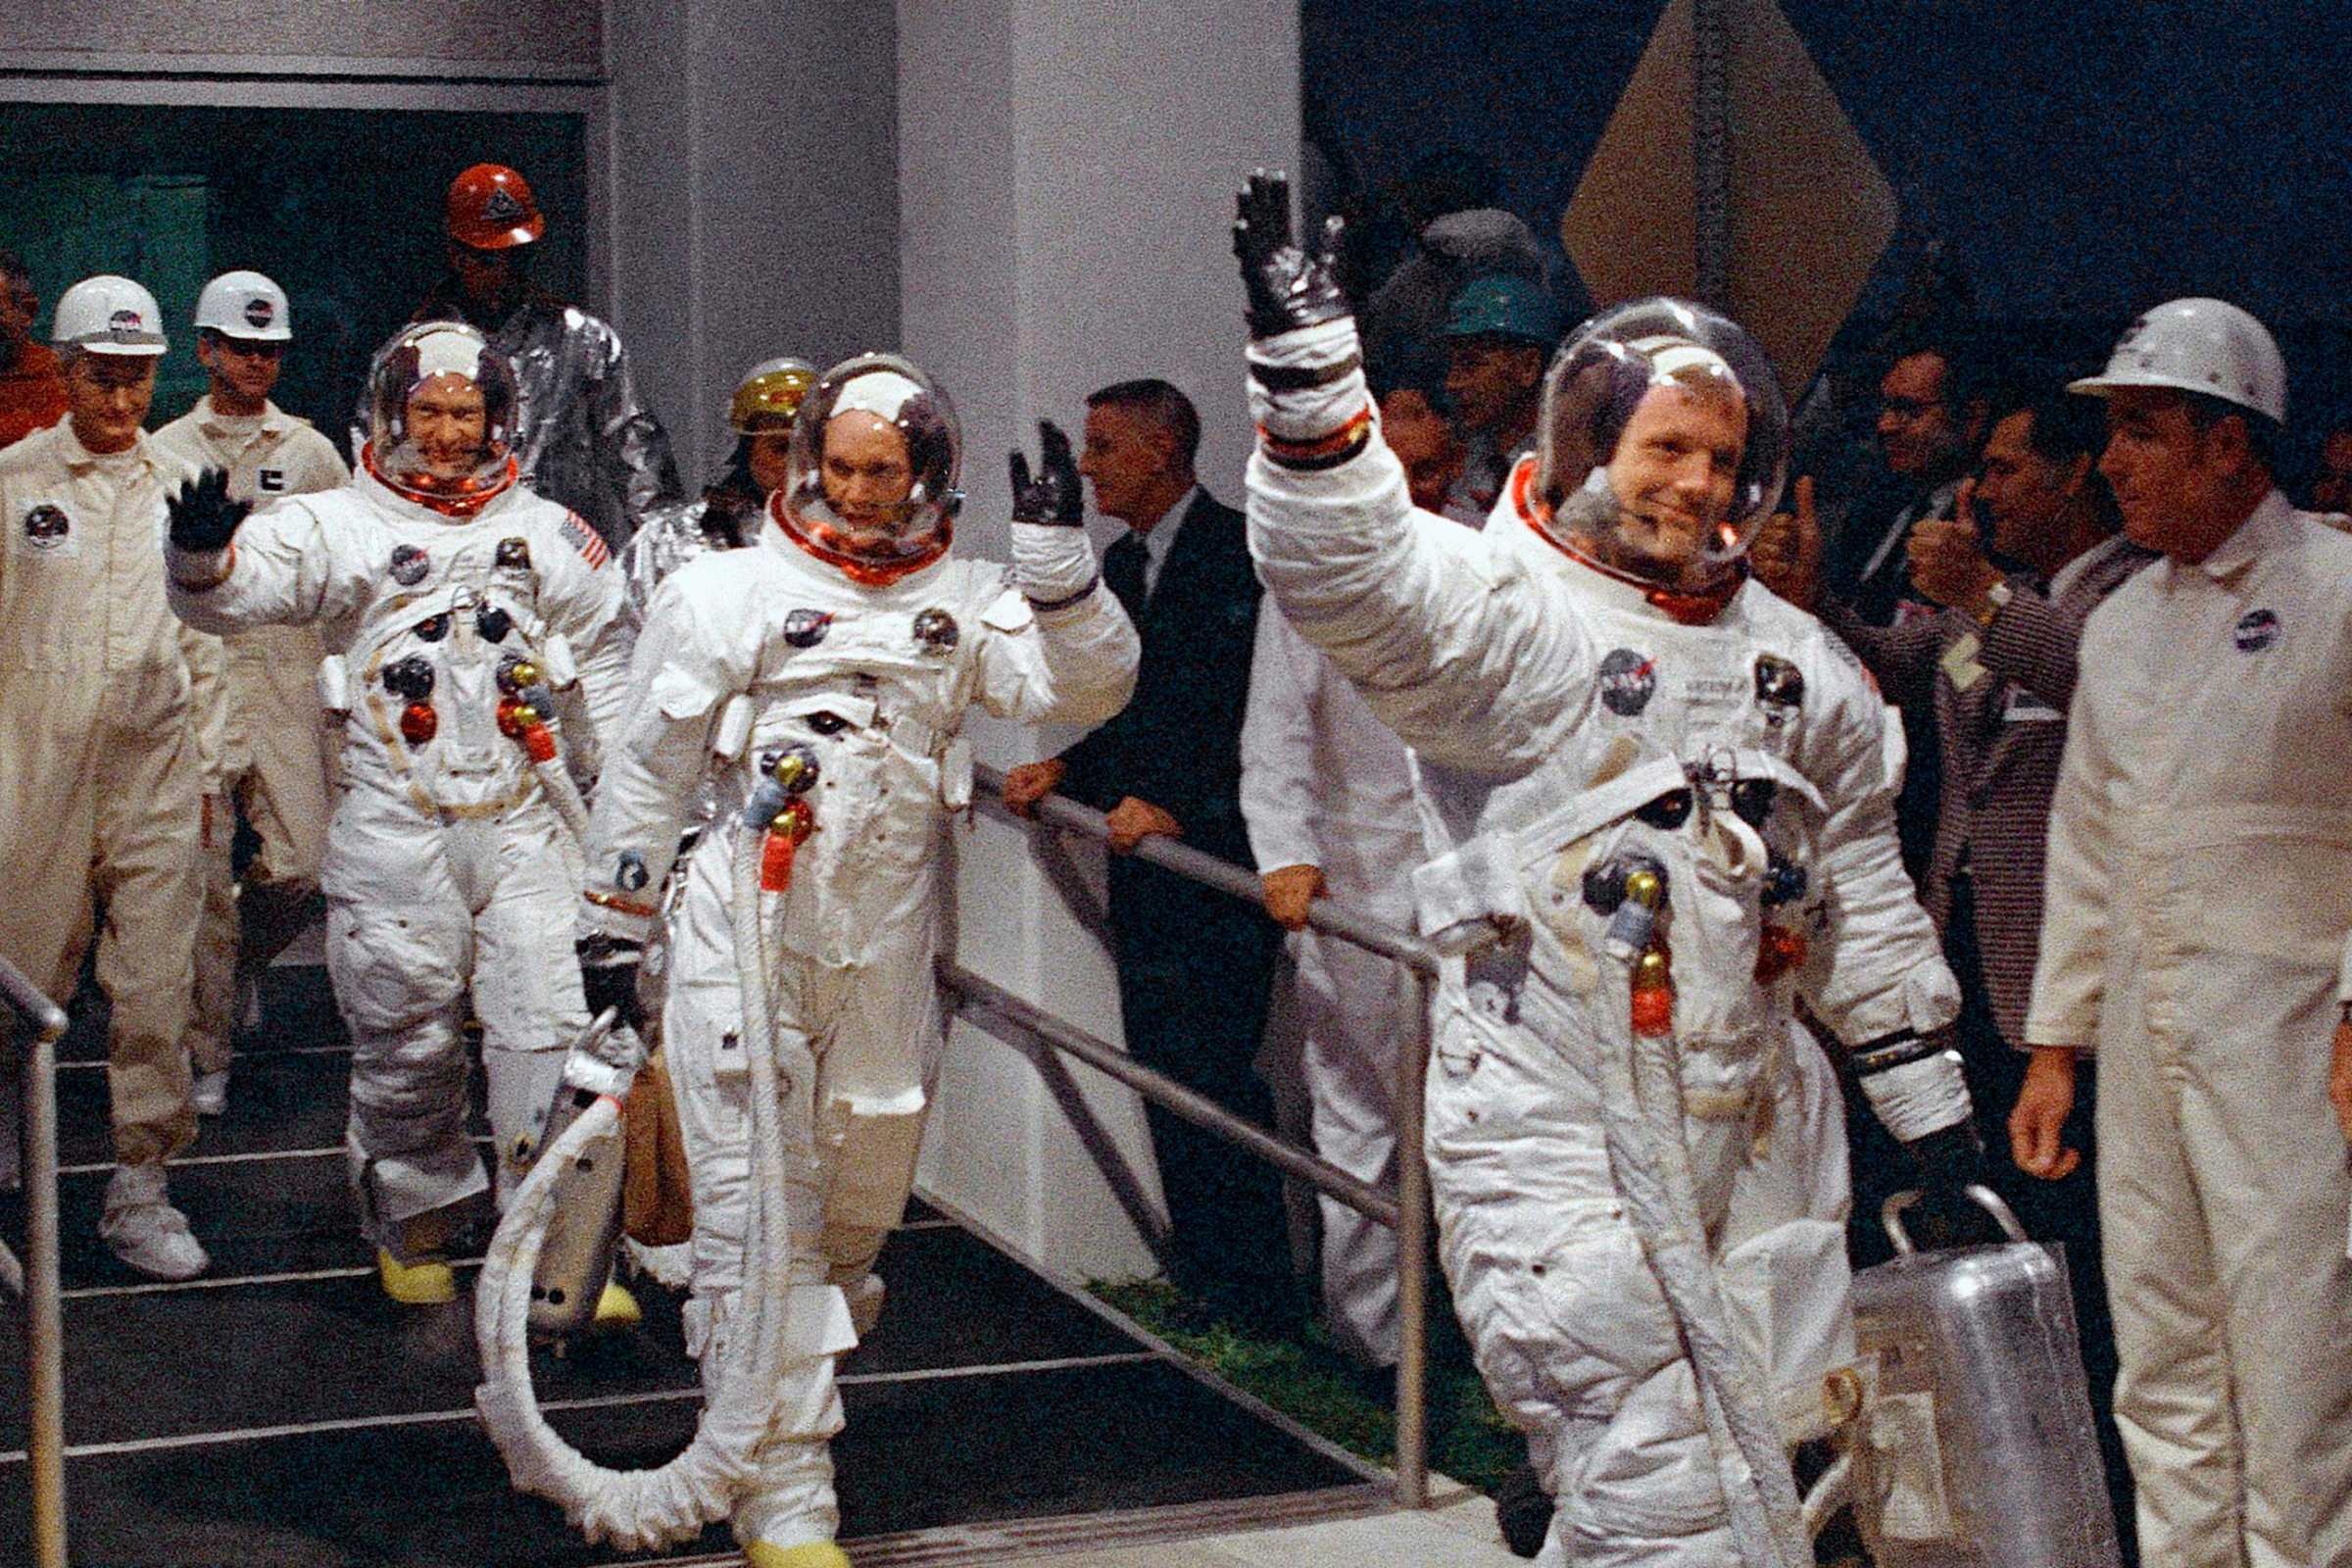 The crew, already in their flight suits, walk to the vehicle that will transport them to the Saturn V launch vehicle.